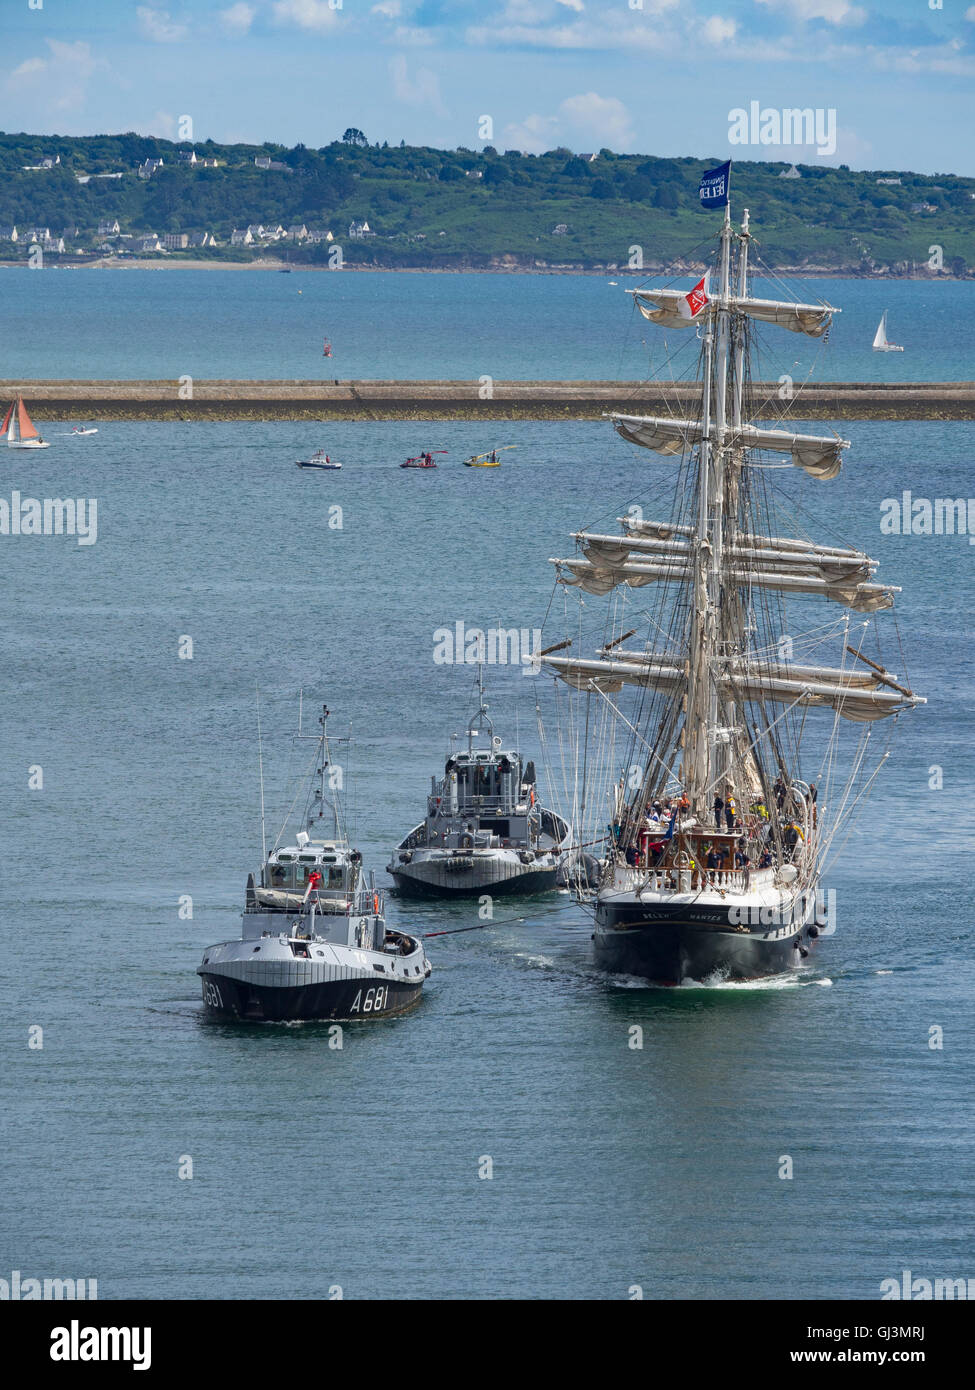 The frigate Belem assisted by two tugs enters the estuary of the Penfeld during the Brest  maritime festival of - Stock Image